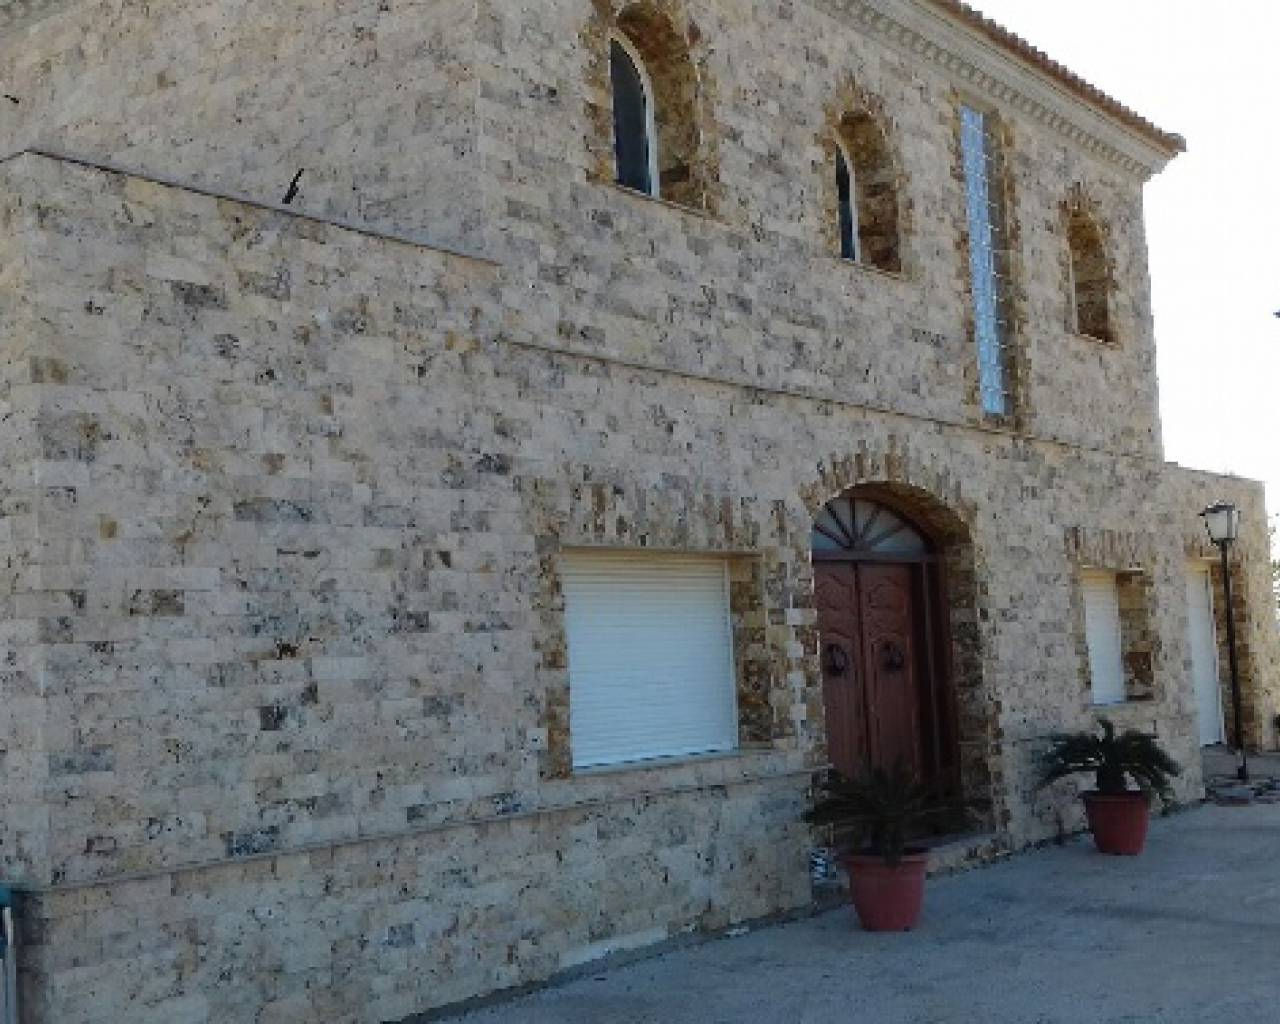 Sale - Country Property - Balsicas - La Tercia